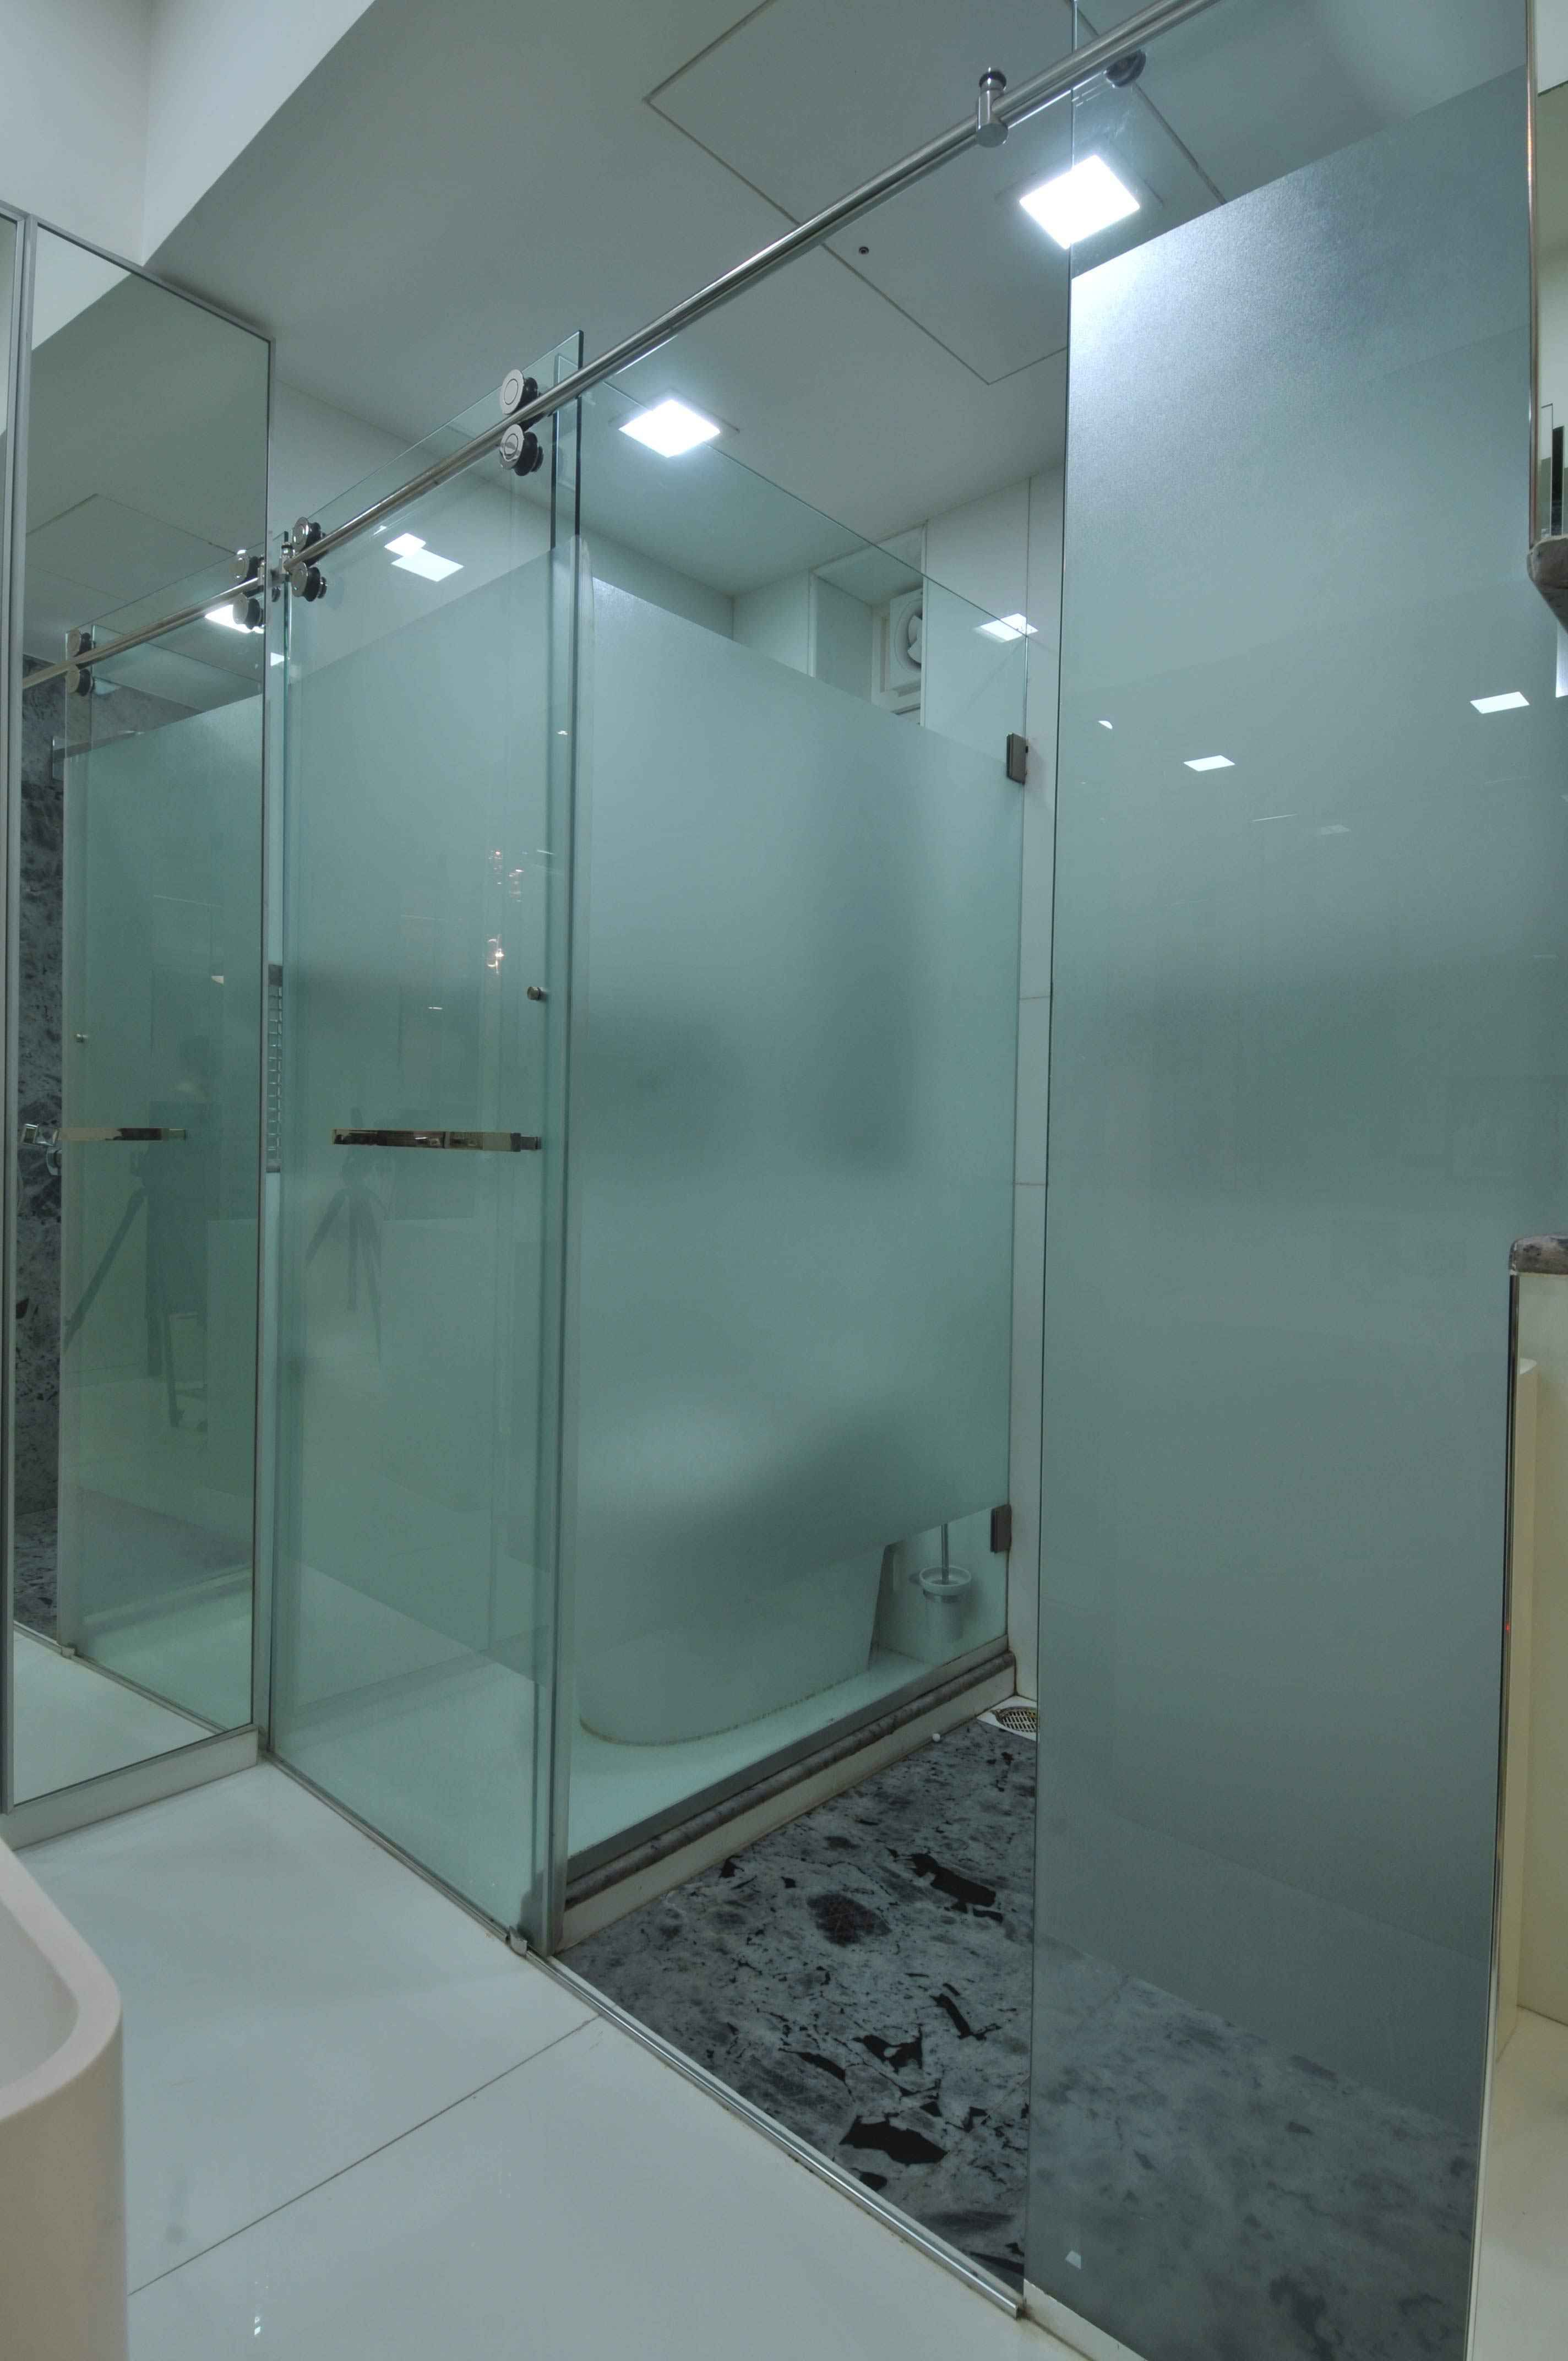 bathroom design by sonali shah architect in mumbai india - Bathroom Designs In Mumbai